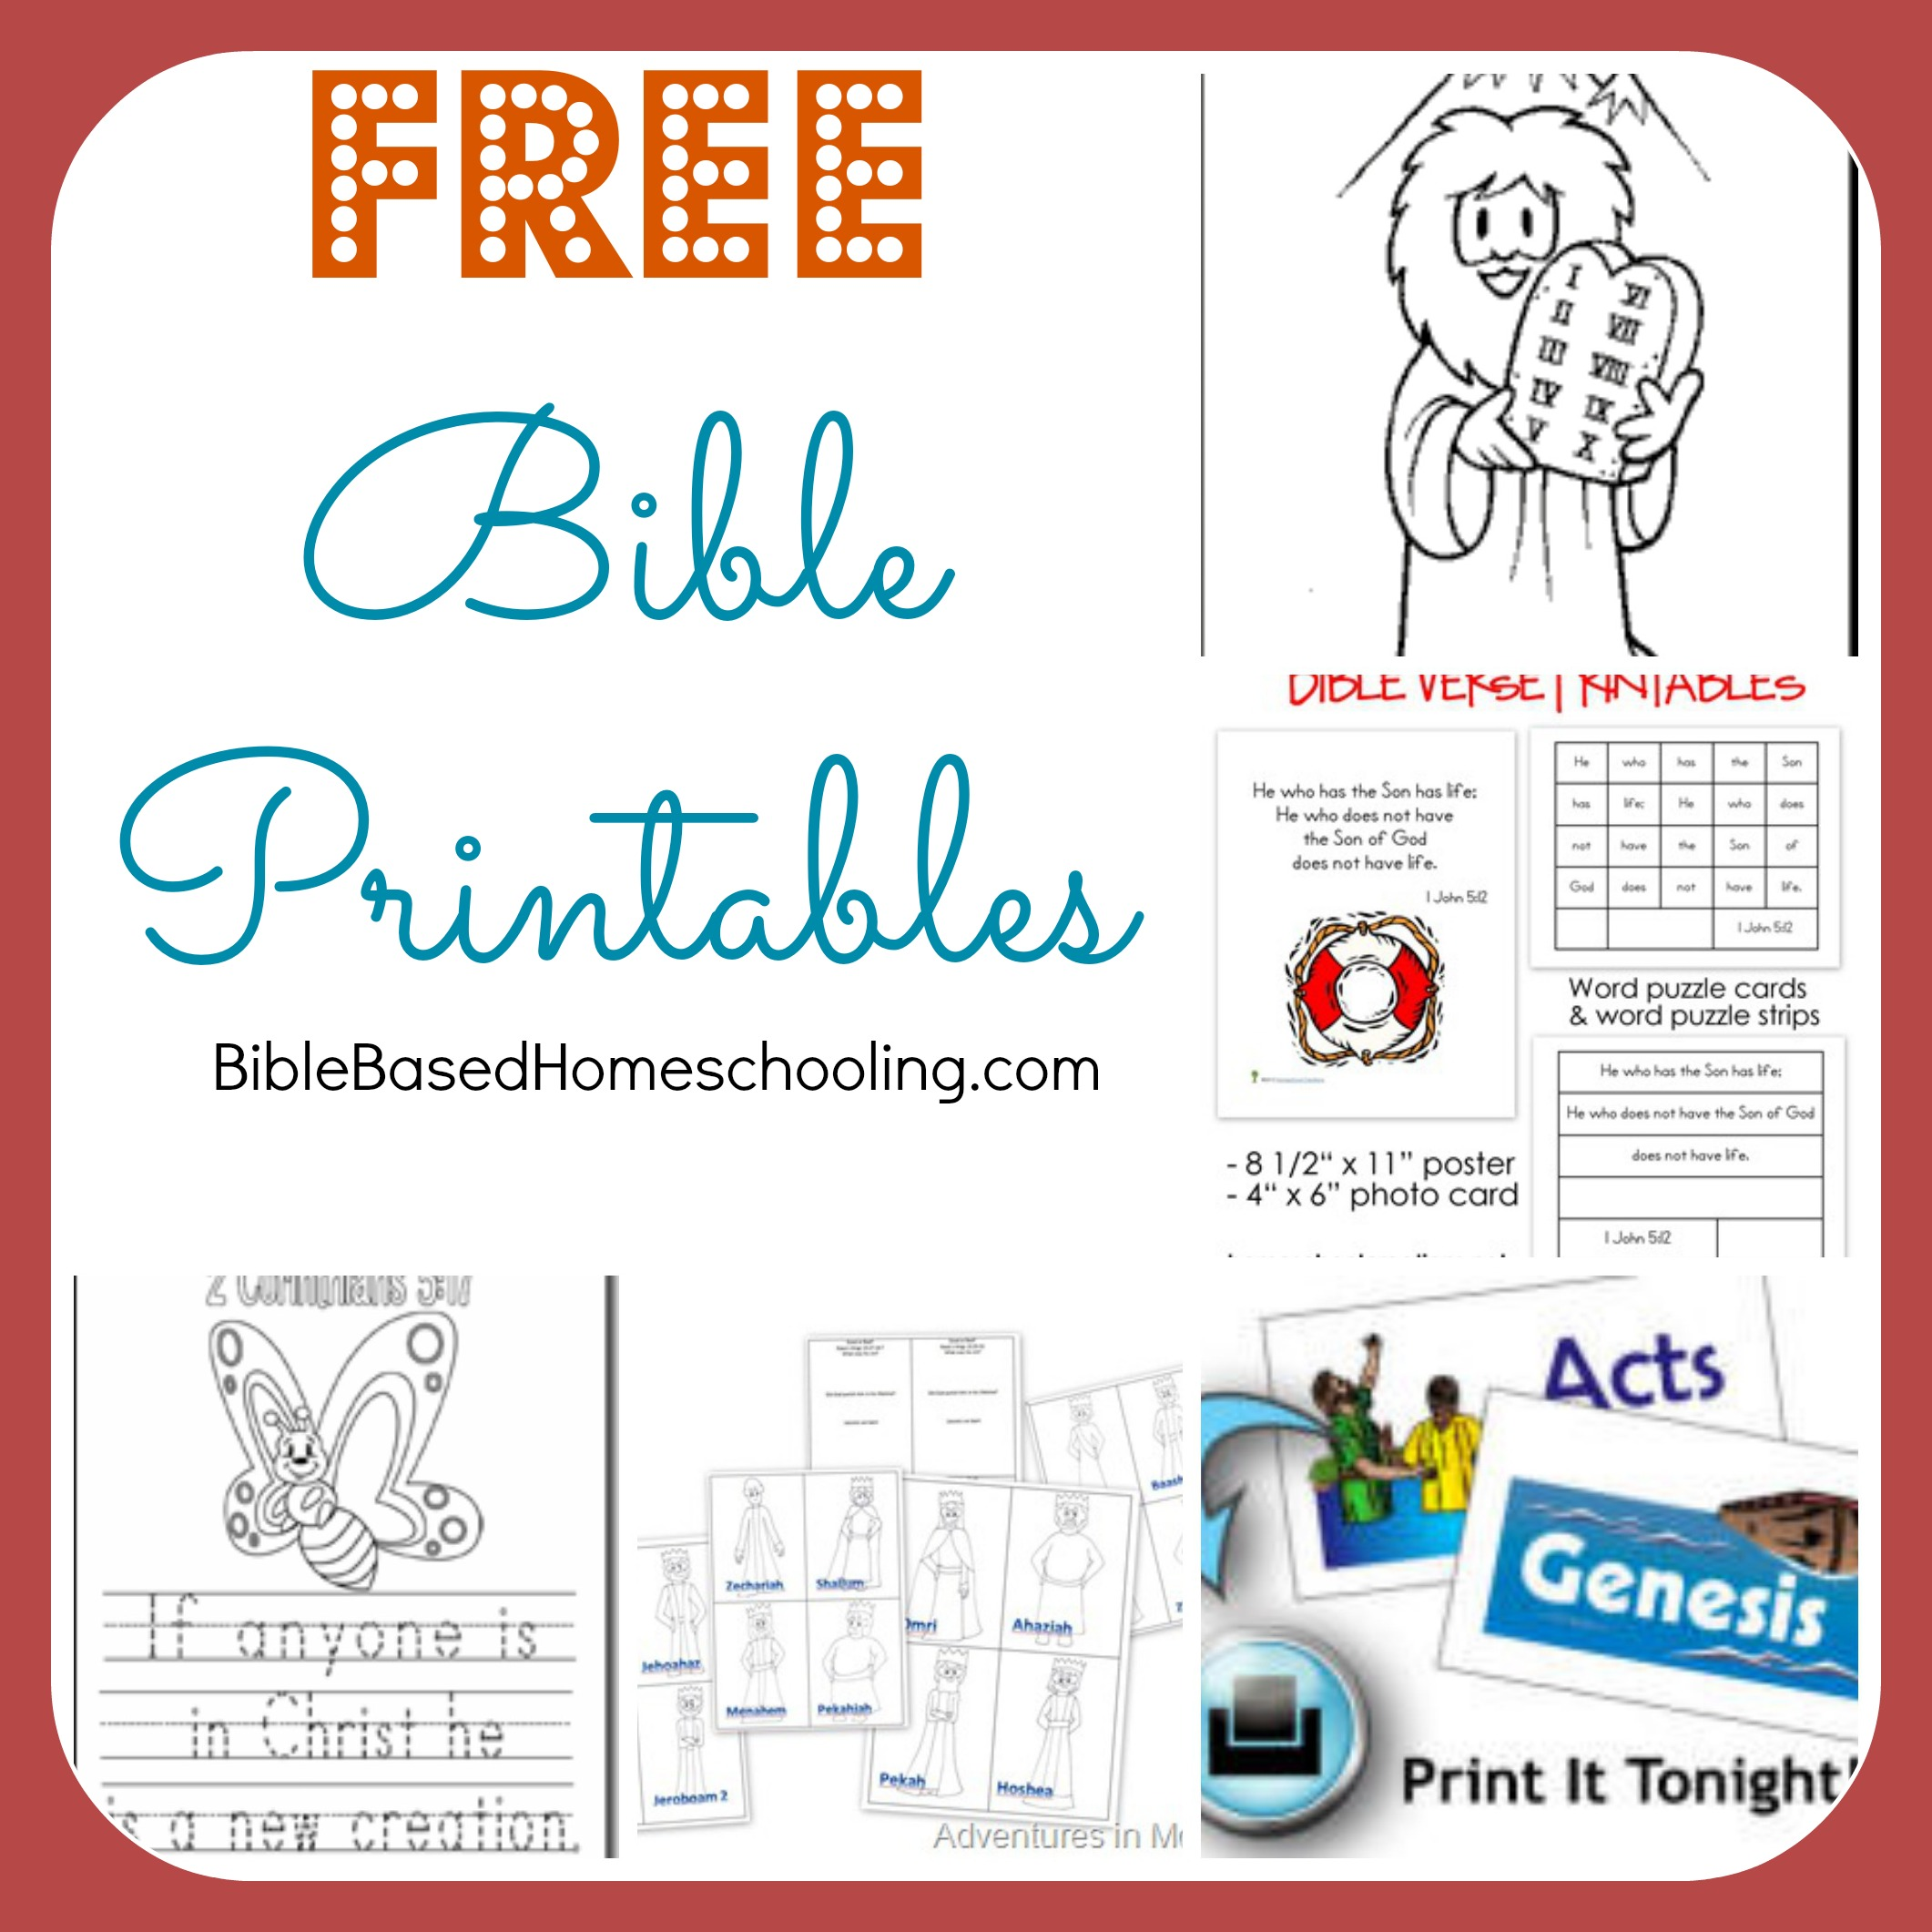 Preschool Printable Images Gallery Category Page 6